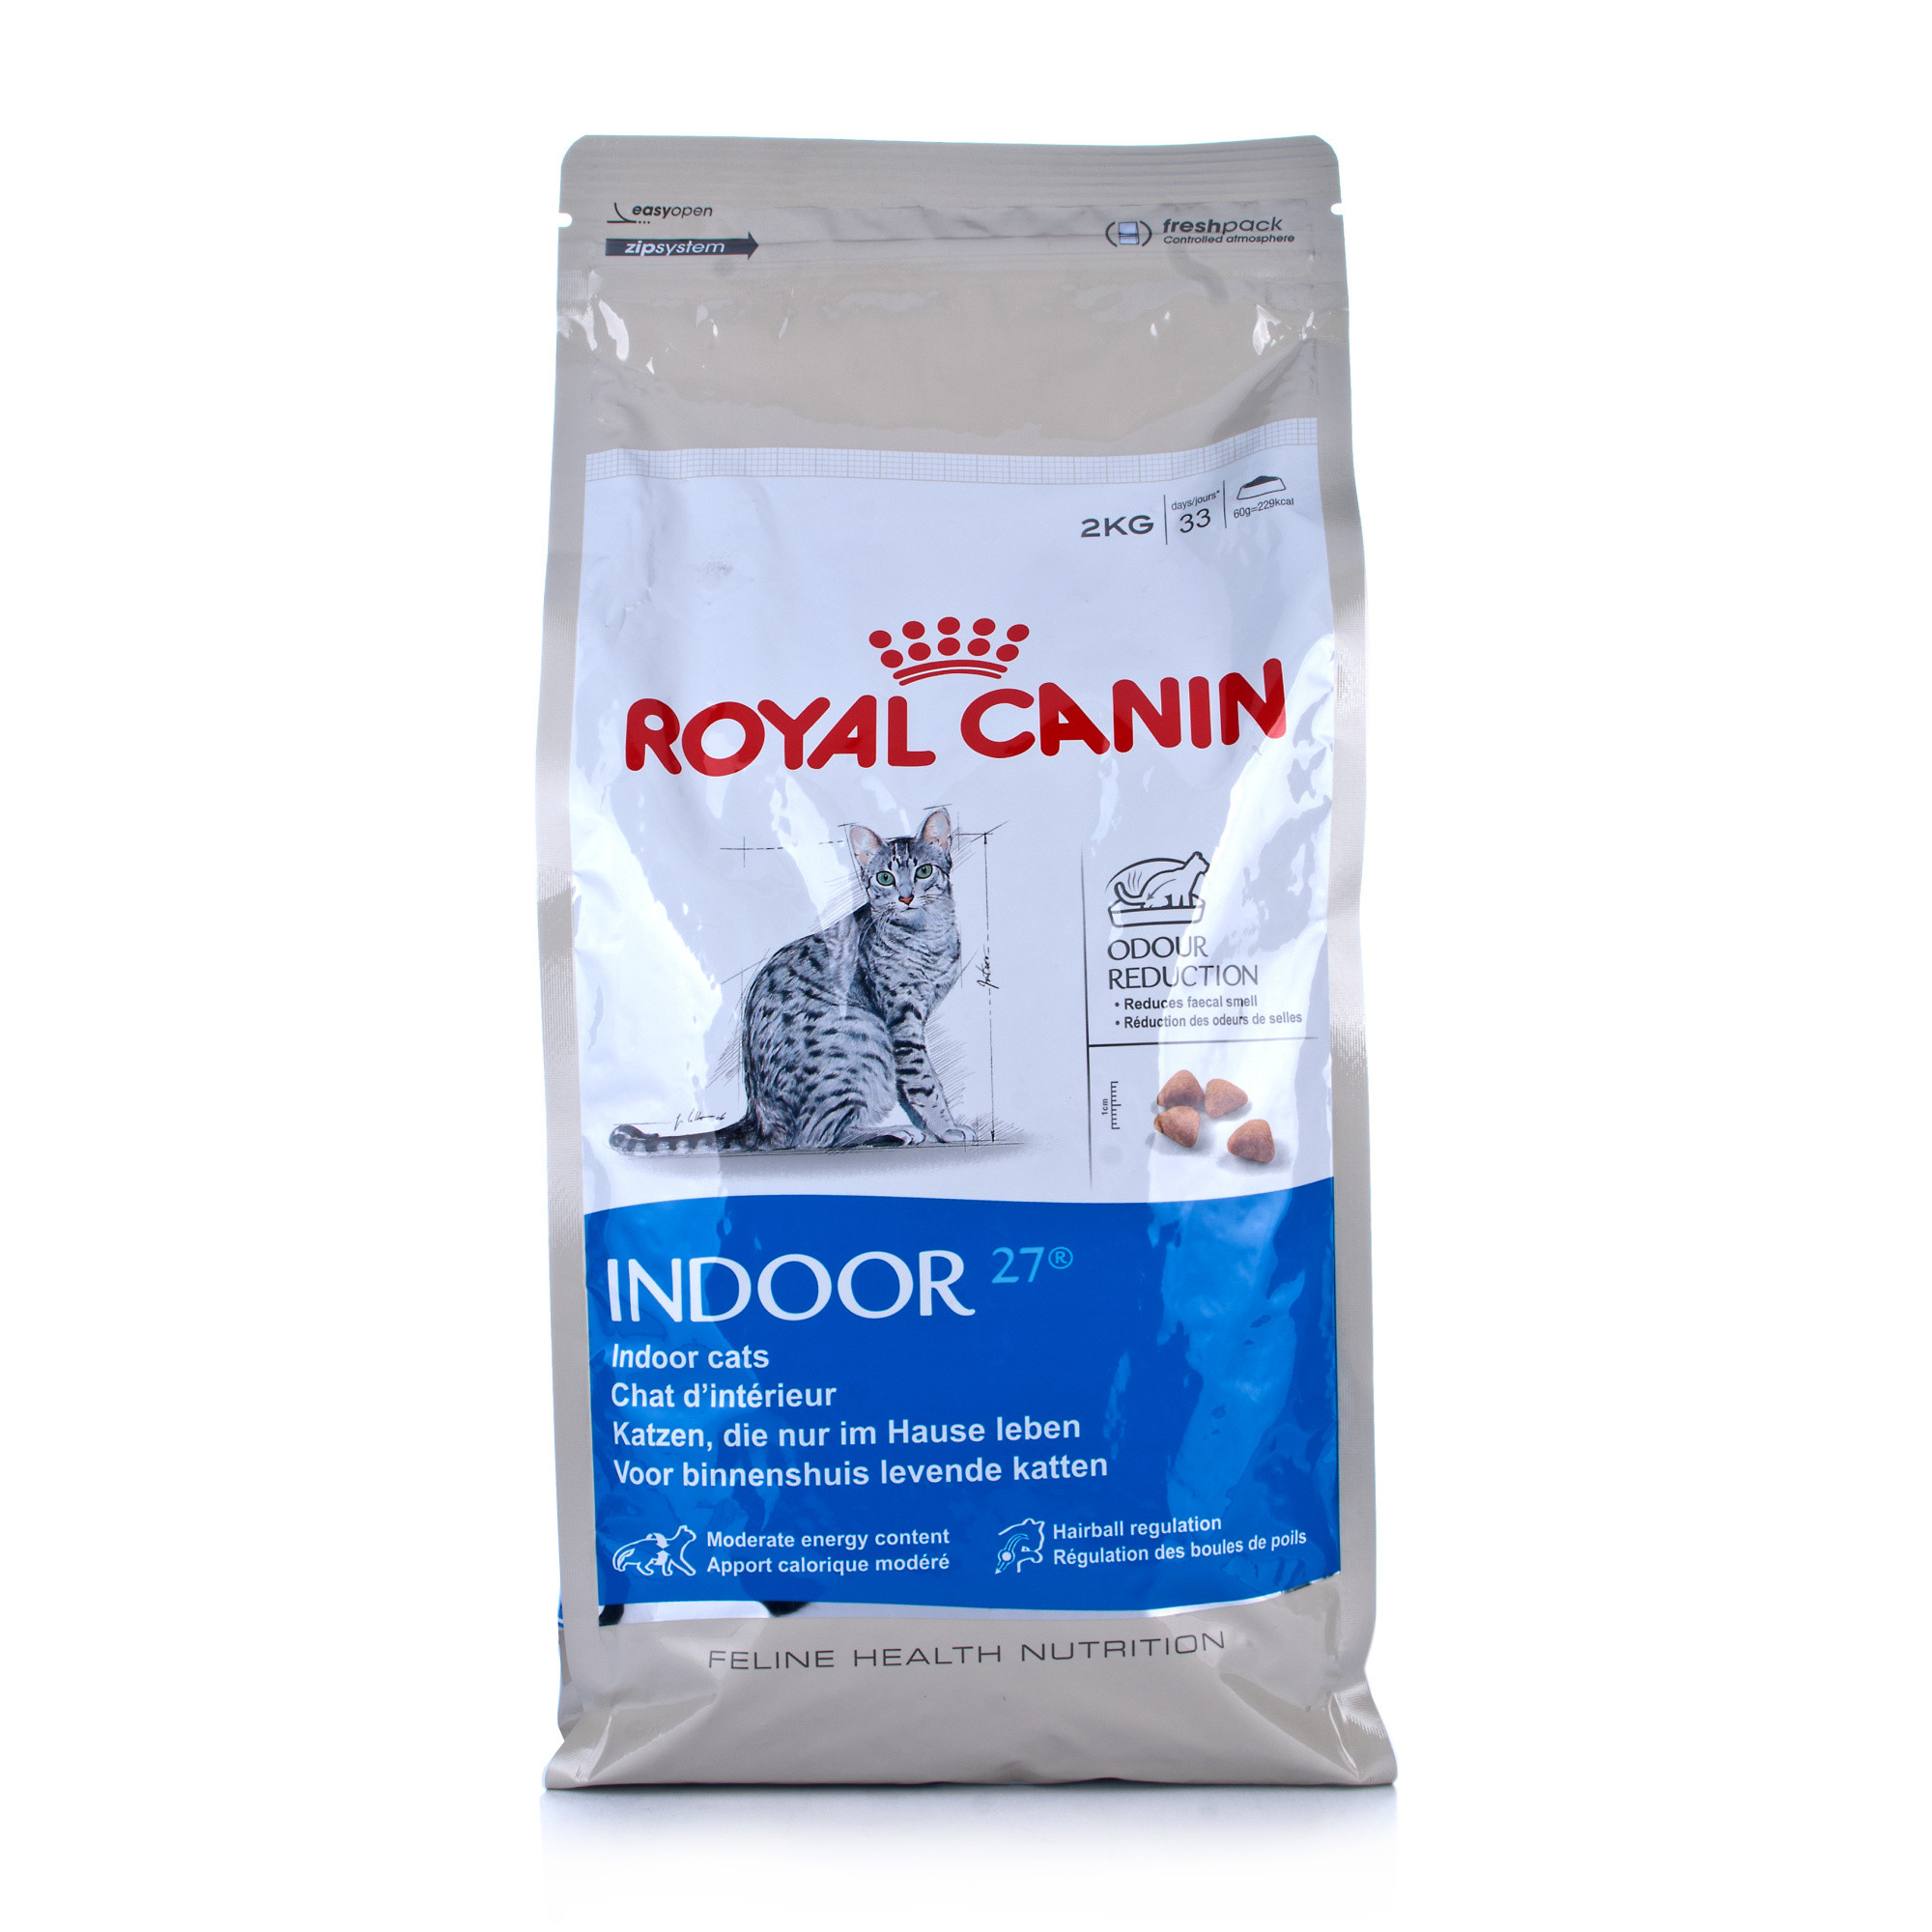 royal canin indoor cat 27 chemist direct. Black Bedroom Furniture Sets. Home Design Ideas